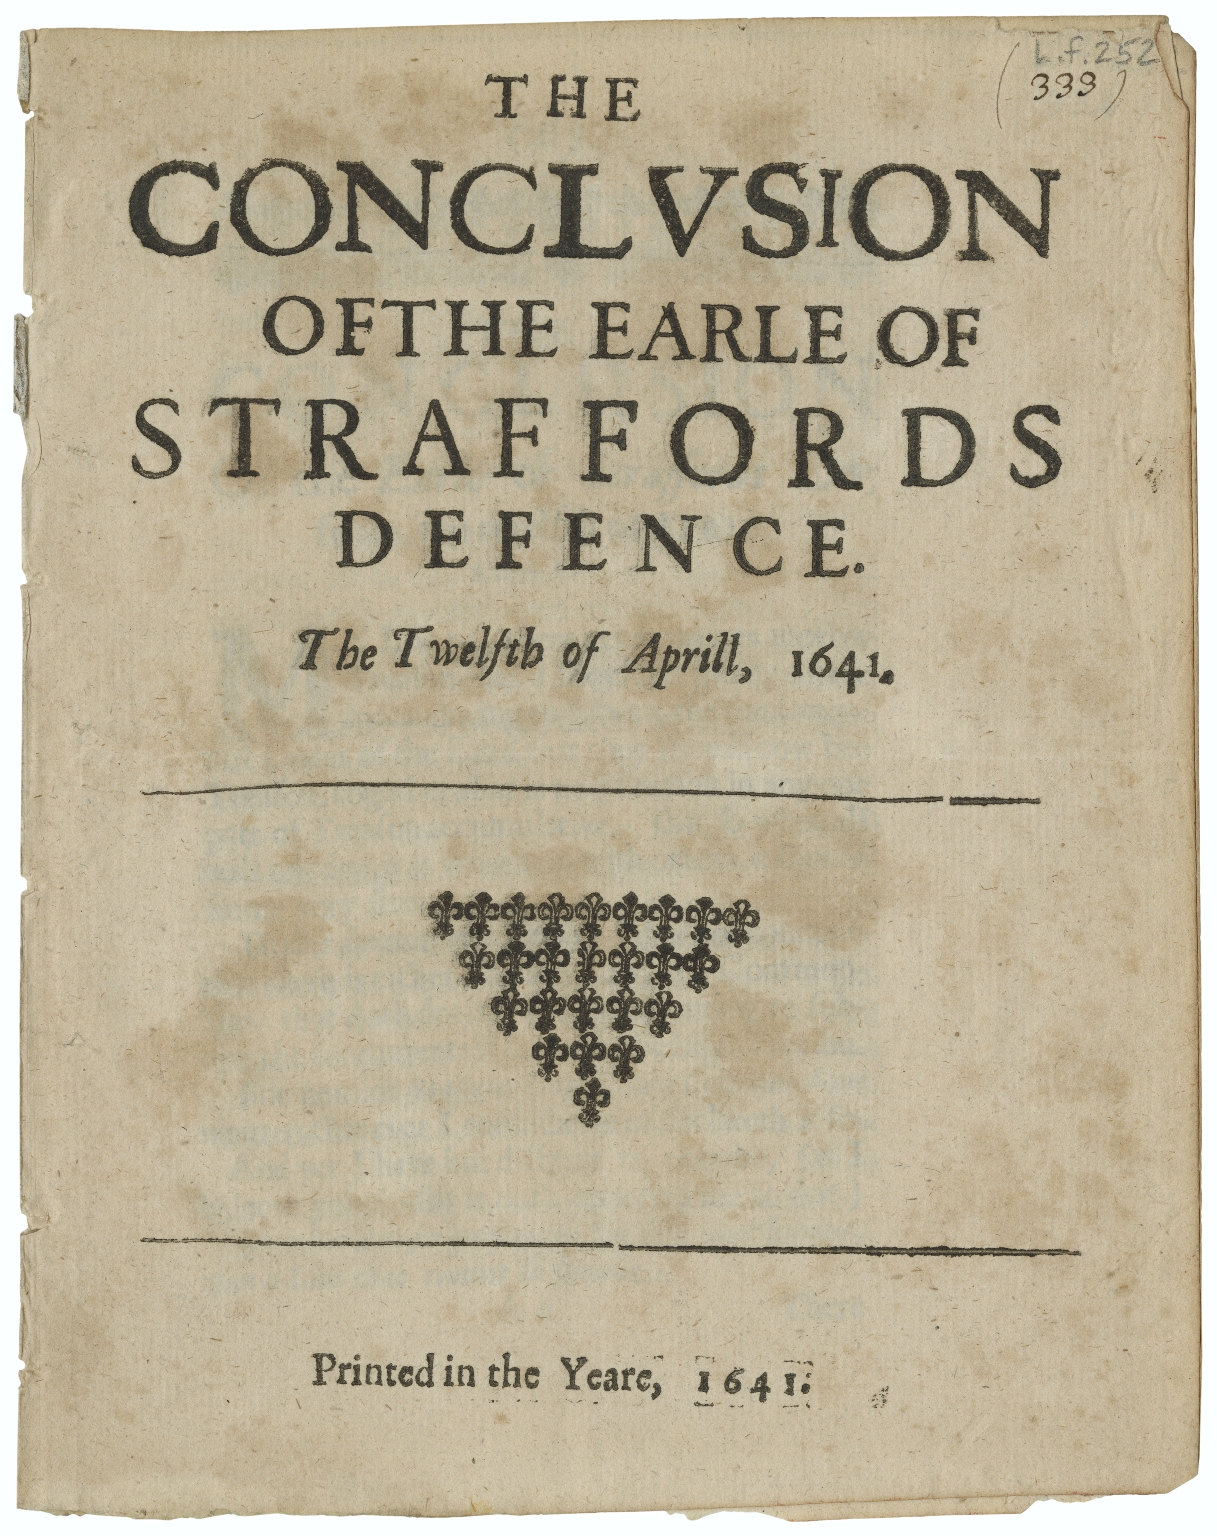 Strafford, Thomas Wentworth, Earl of, 1593-1641. The conclusion of the Earle of Straffords defence, the twelfth of Aprill, 1641 1641